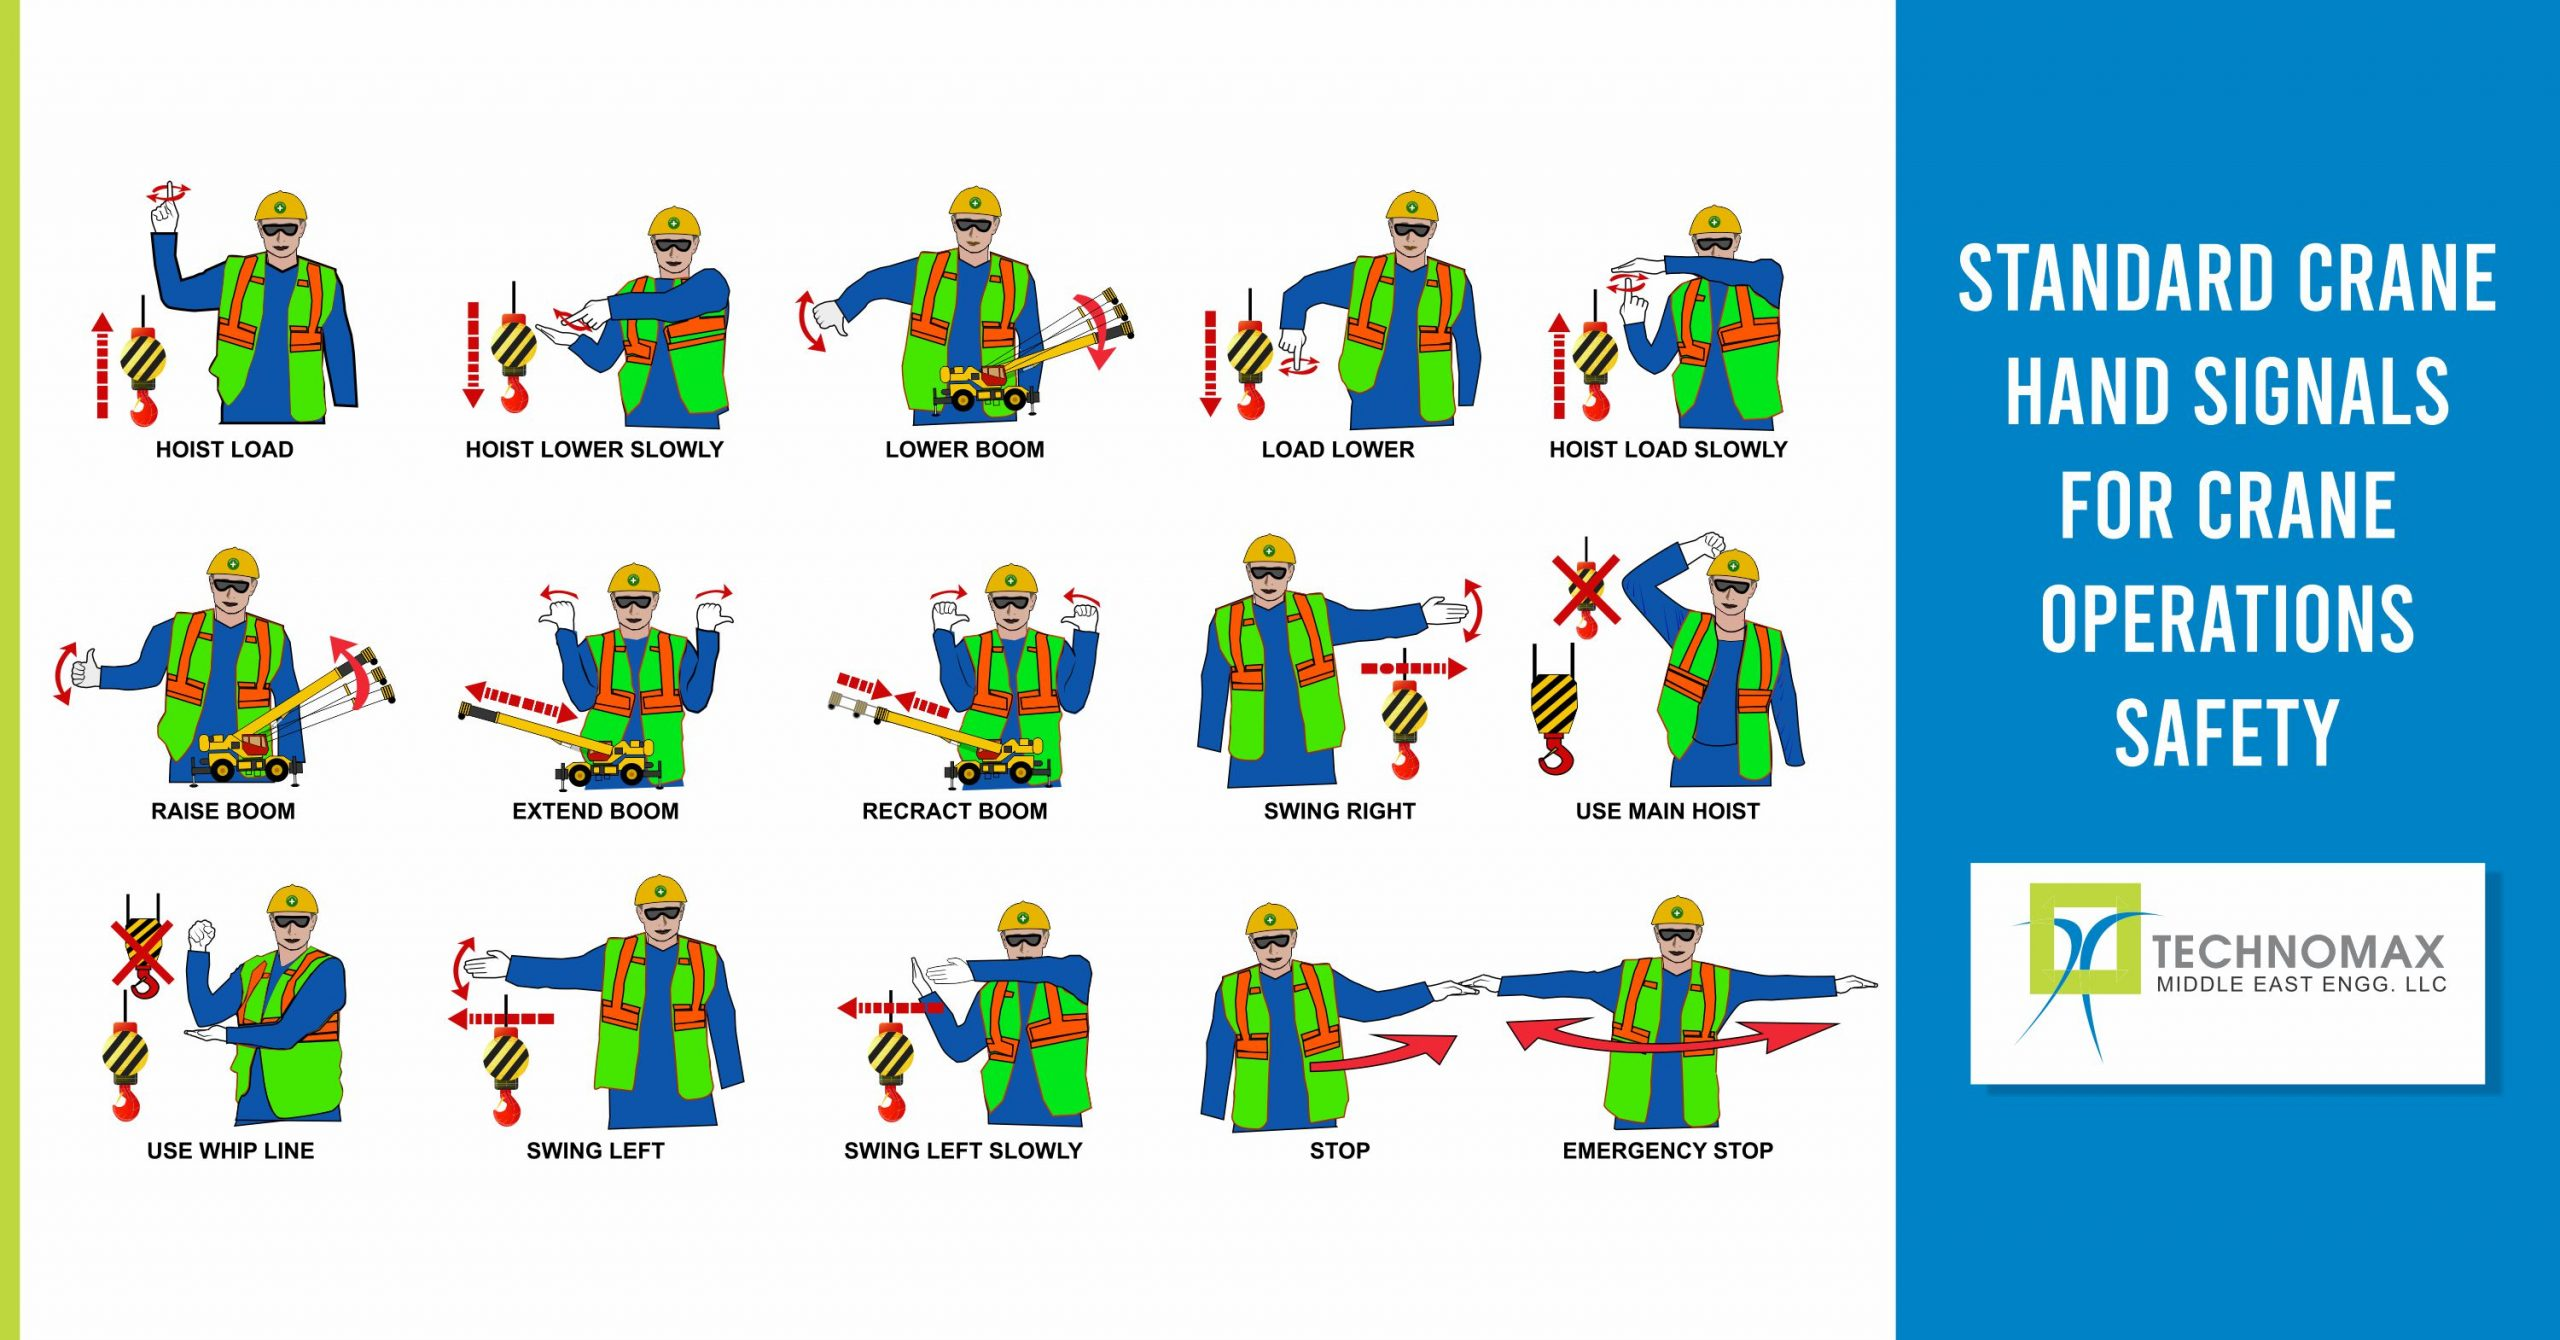 Standard hand signals for Crane Operations